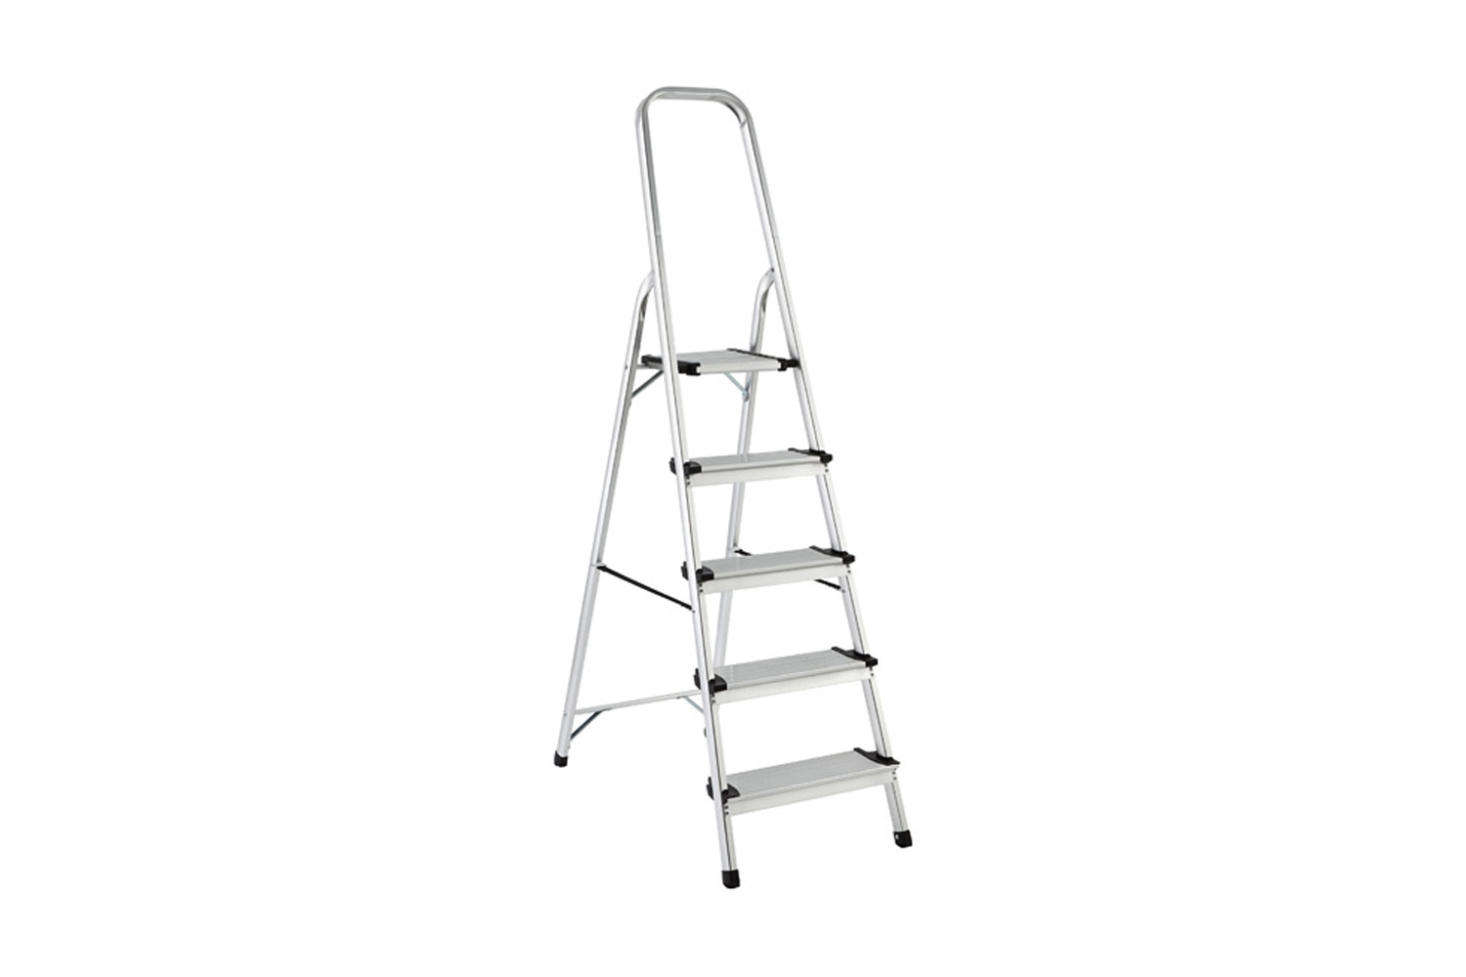 The Polder 5-Step Aluminum Folding Ladder is $99.99 at The Container Store.